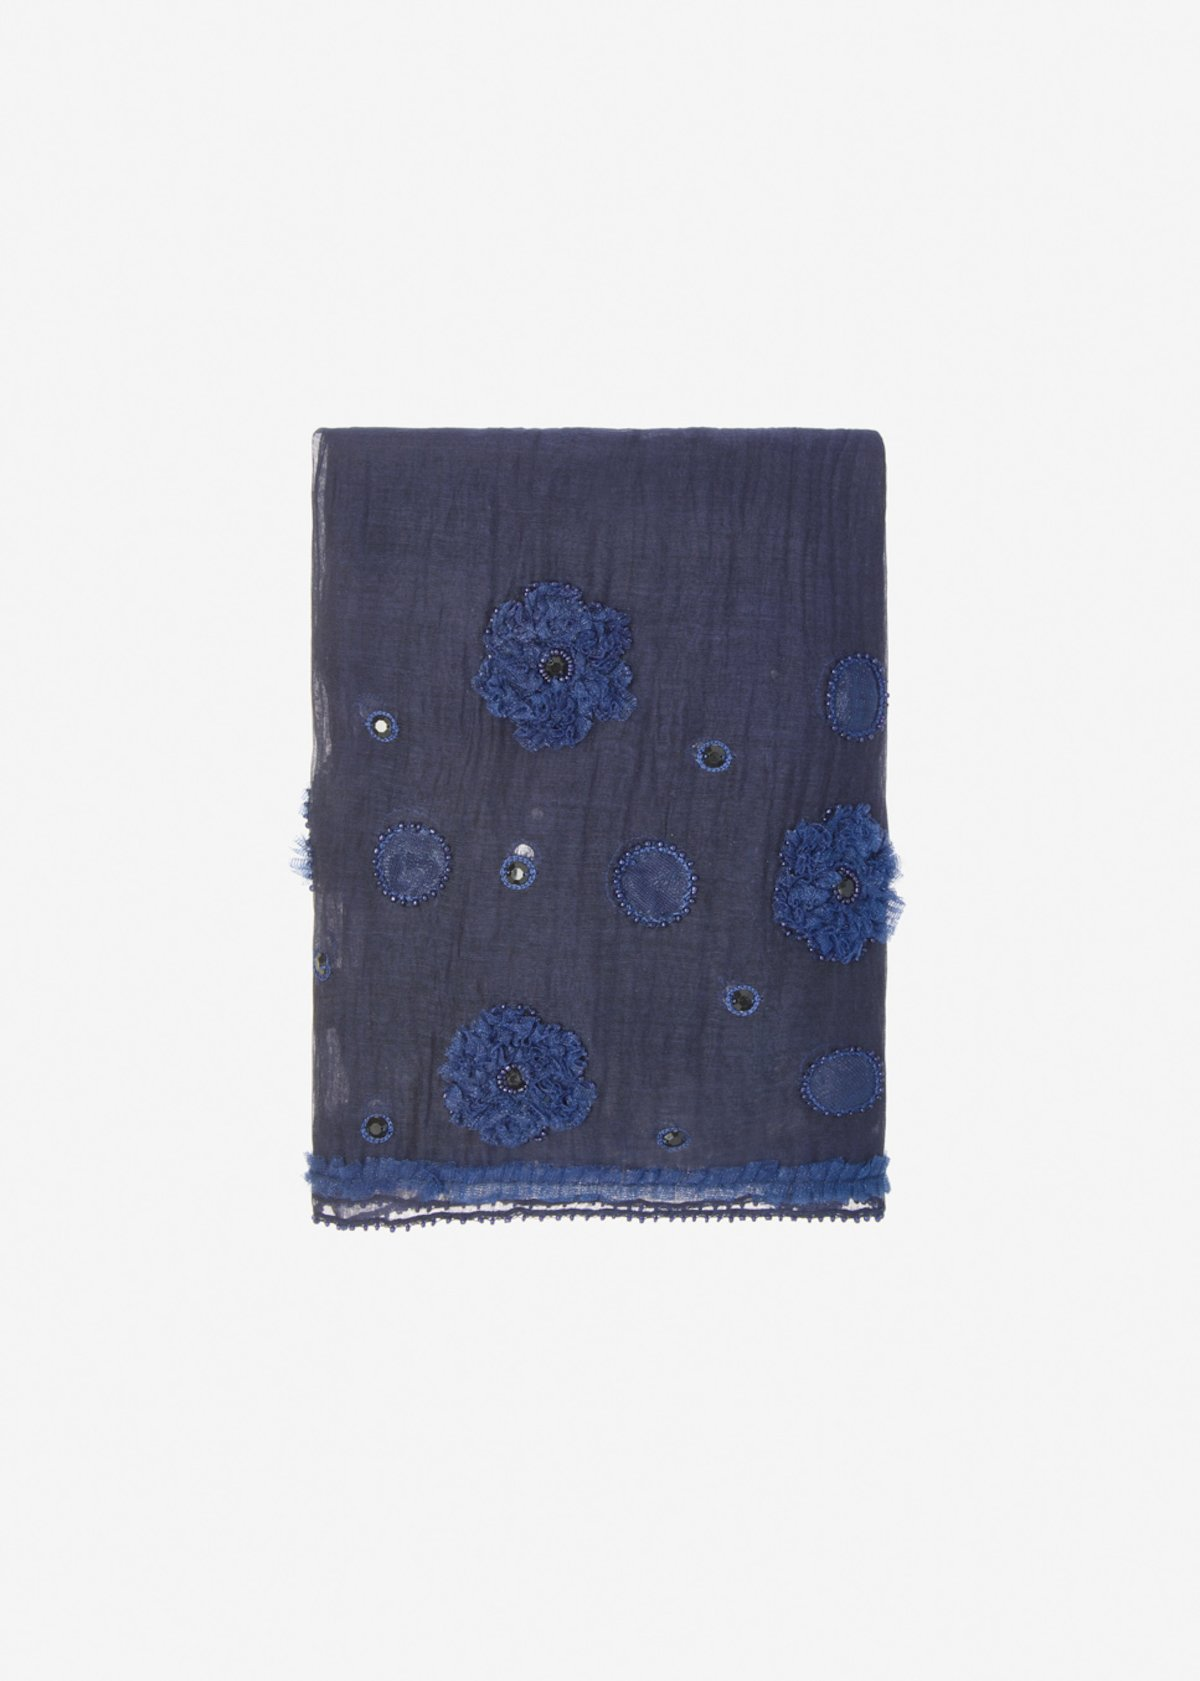 Sfiora silk and cotton scarf with floral embroidery - Medium Blue